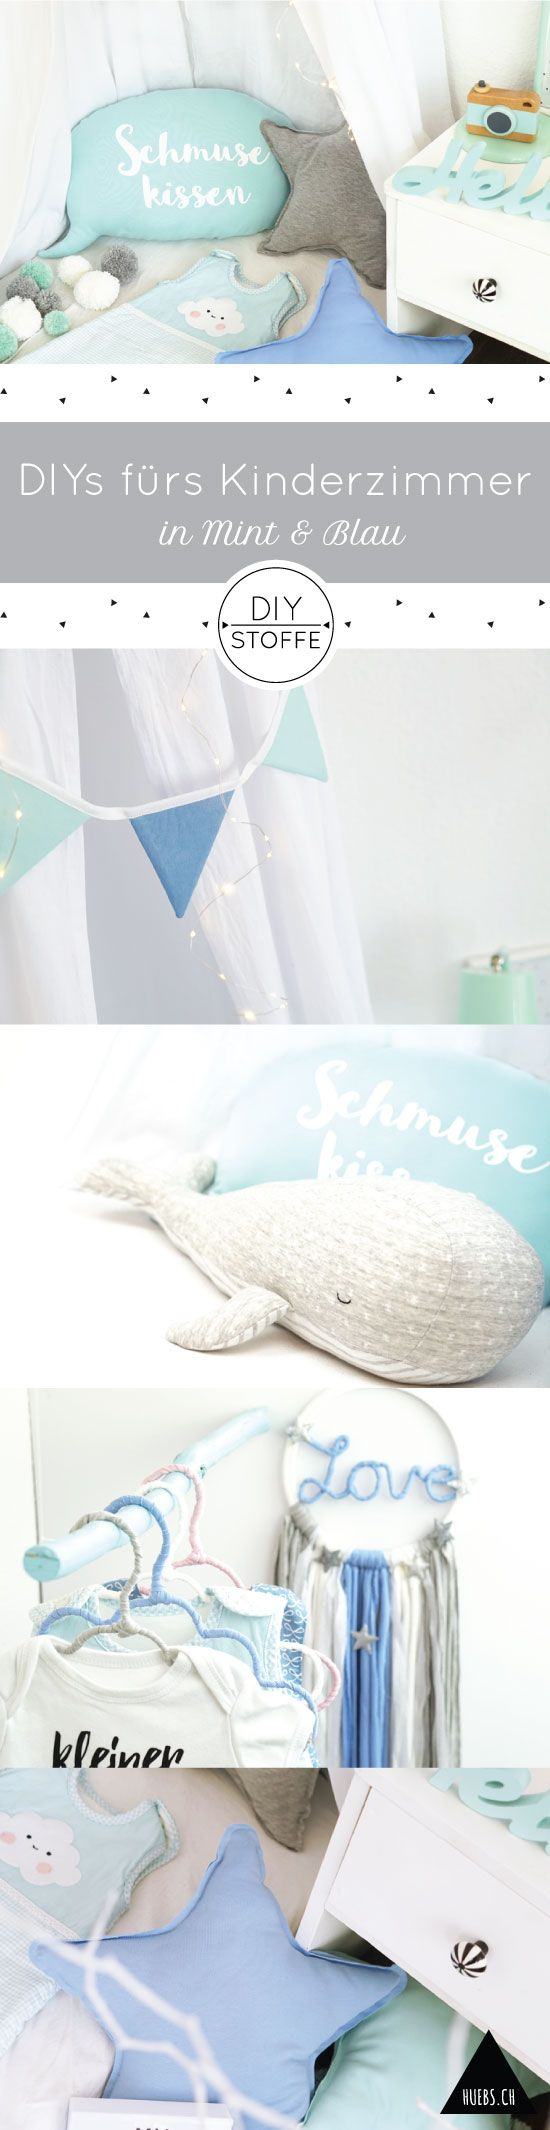 51 best ☆ DIYs & Nähen fürs Kinderzimmer ☆ images on Pinterest ...